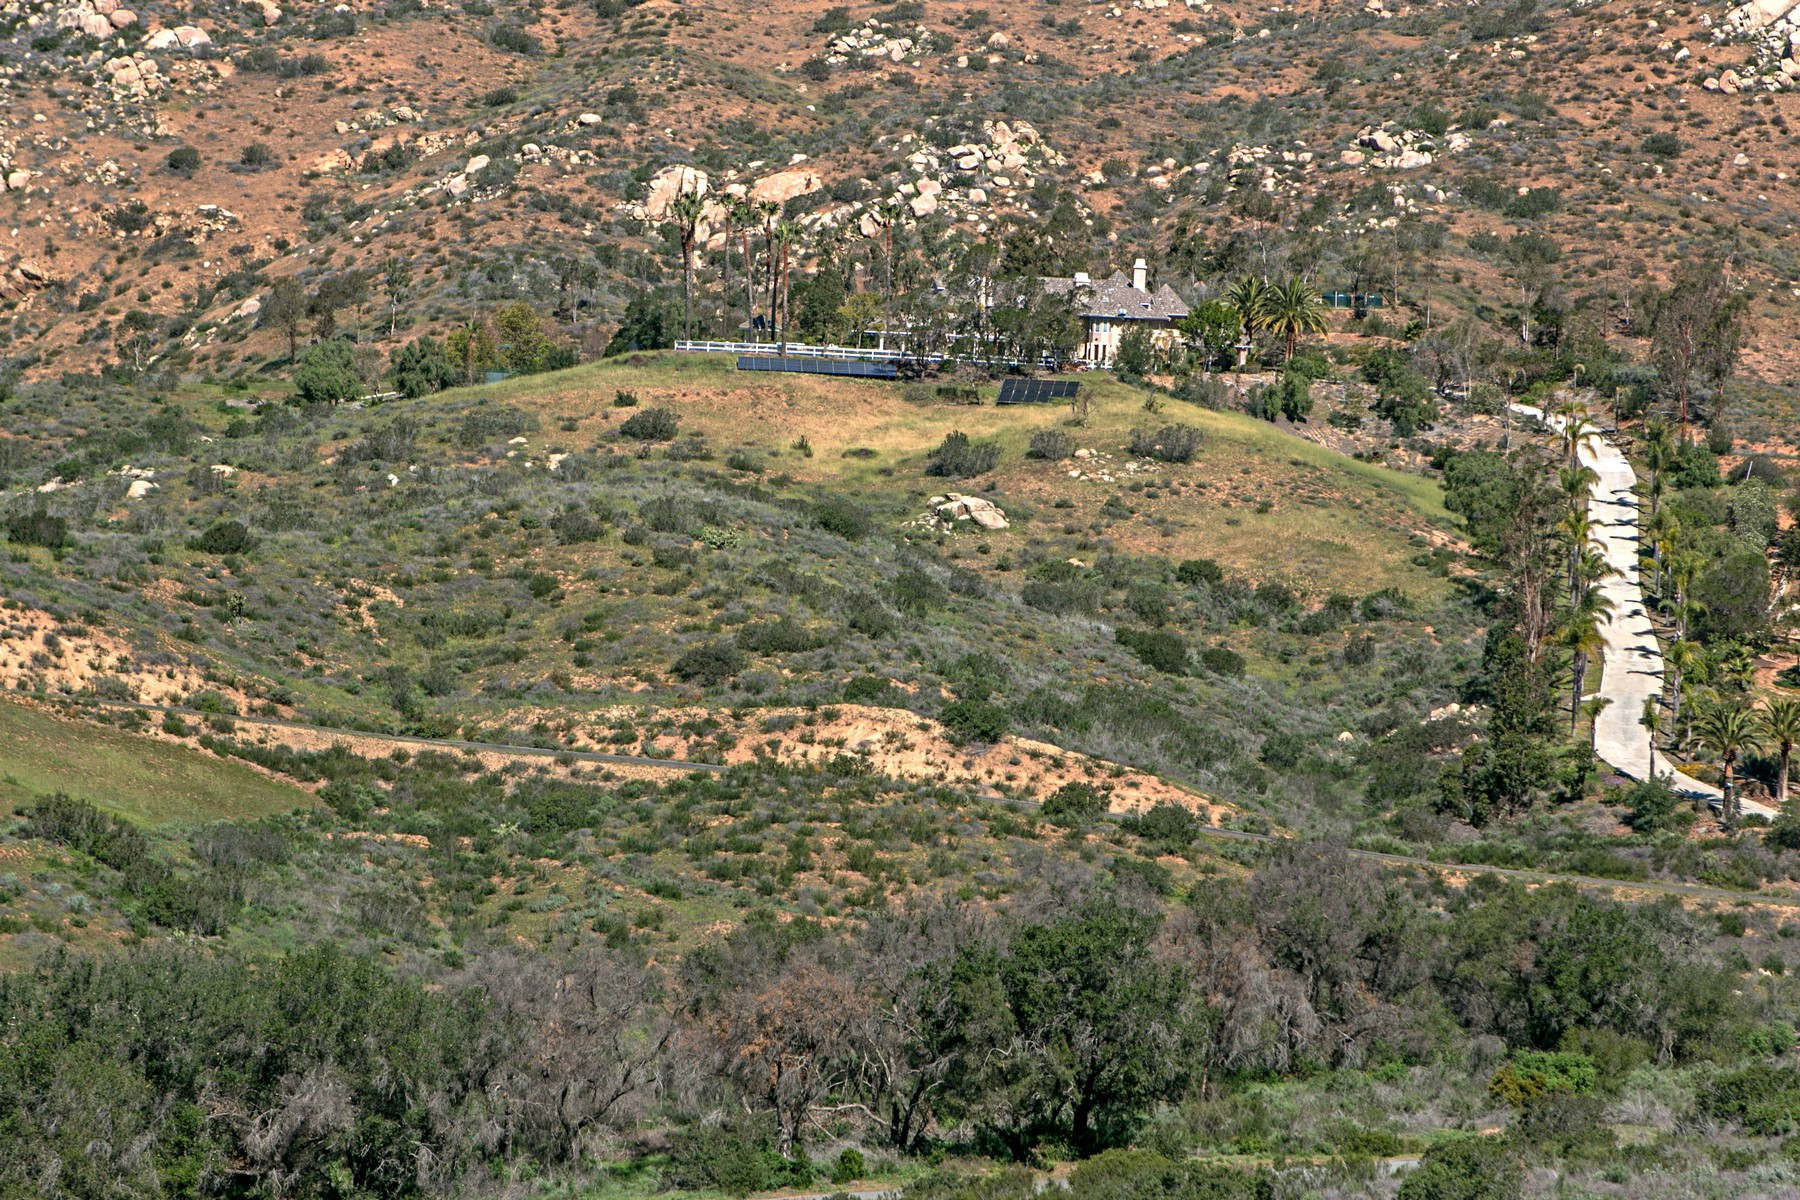 Land for Sale at Wild Horse Creek Wild Horse Creek Parcel #2 Poway, California 92064 United States